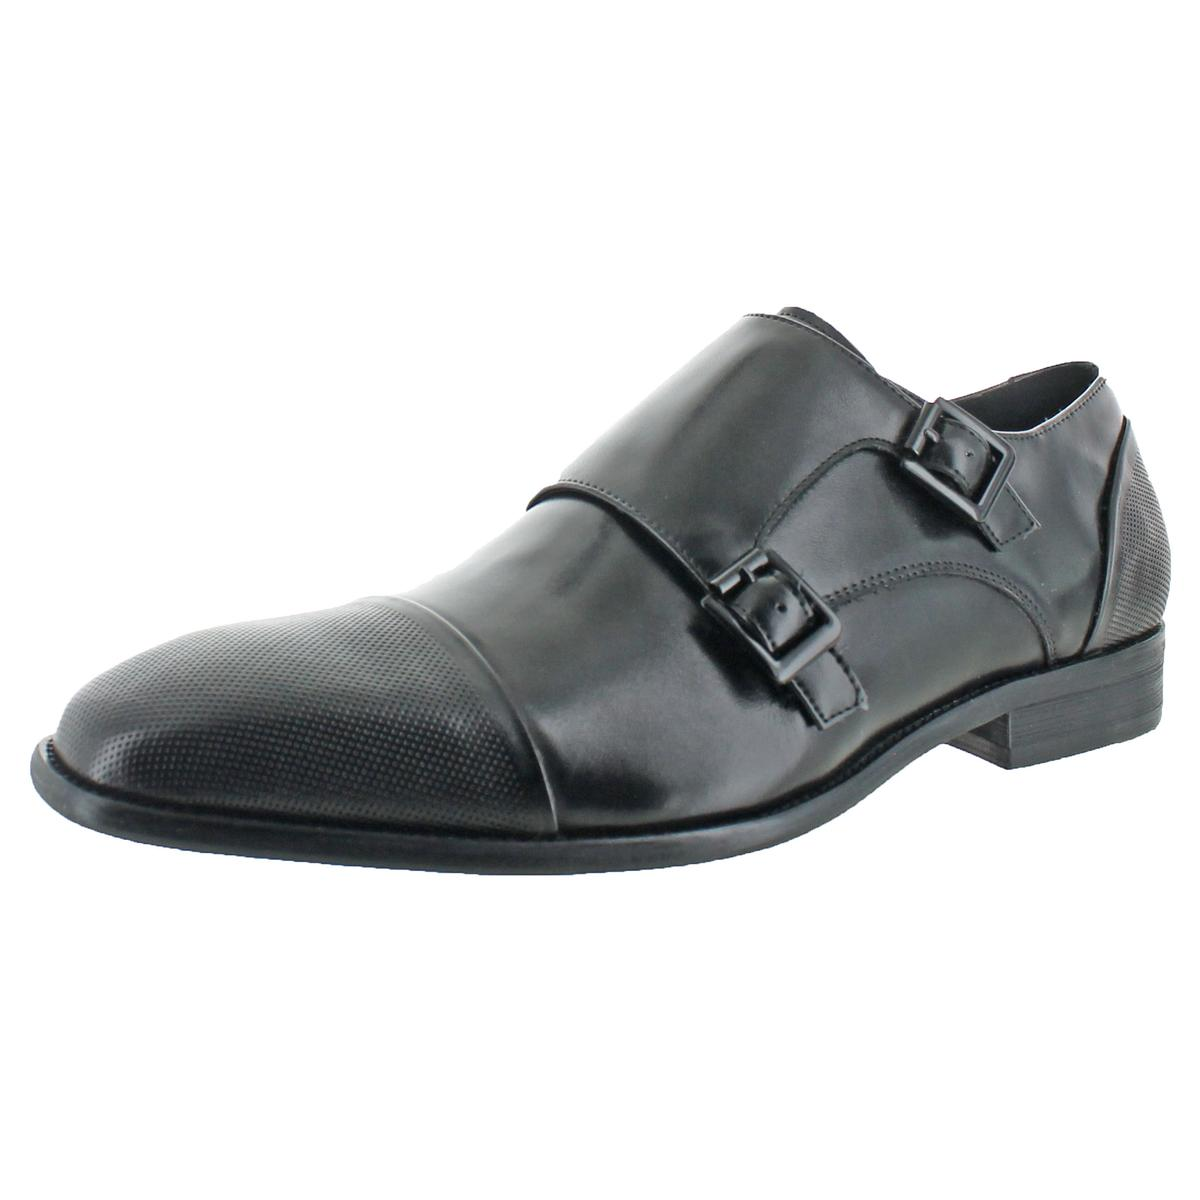 Kenneth Cole Reaction Men's DESIGN21351 Leather Dress Monk Strap Loafers Shoes